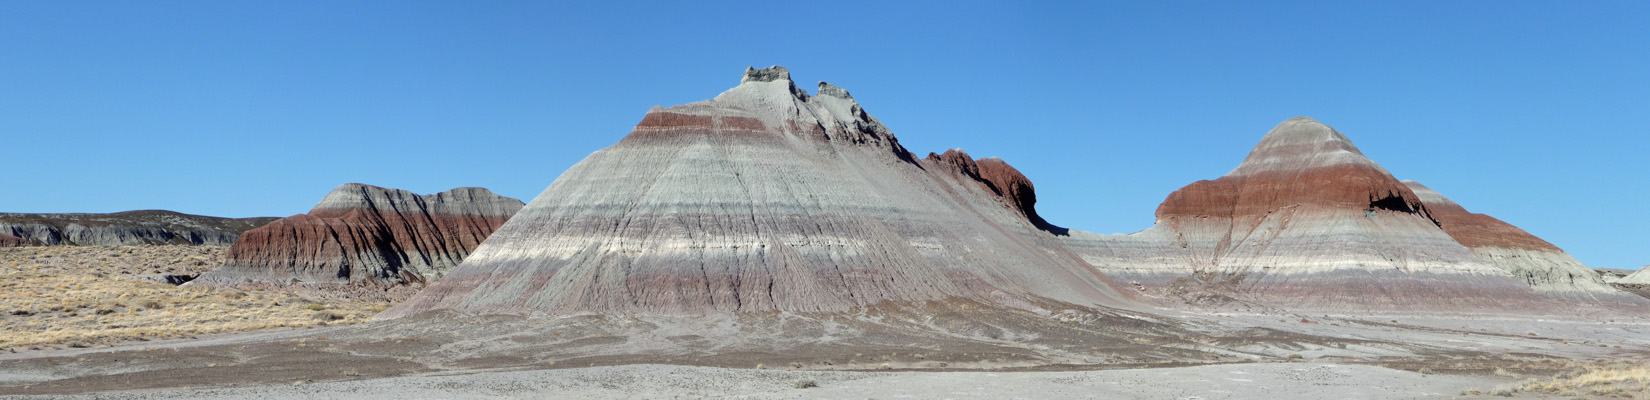 The Teepees Petrified Forest NP